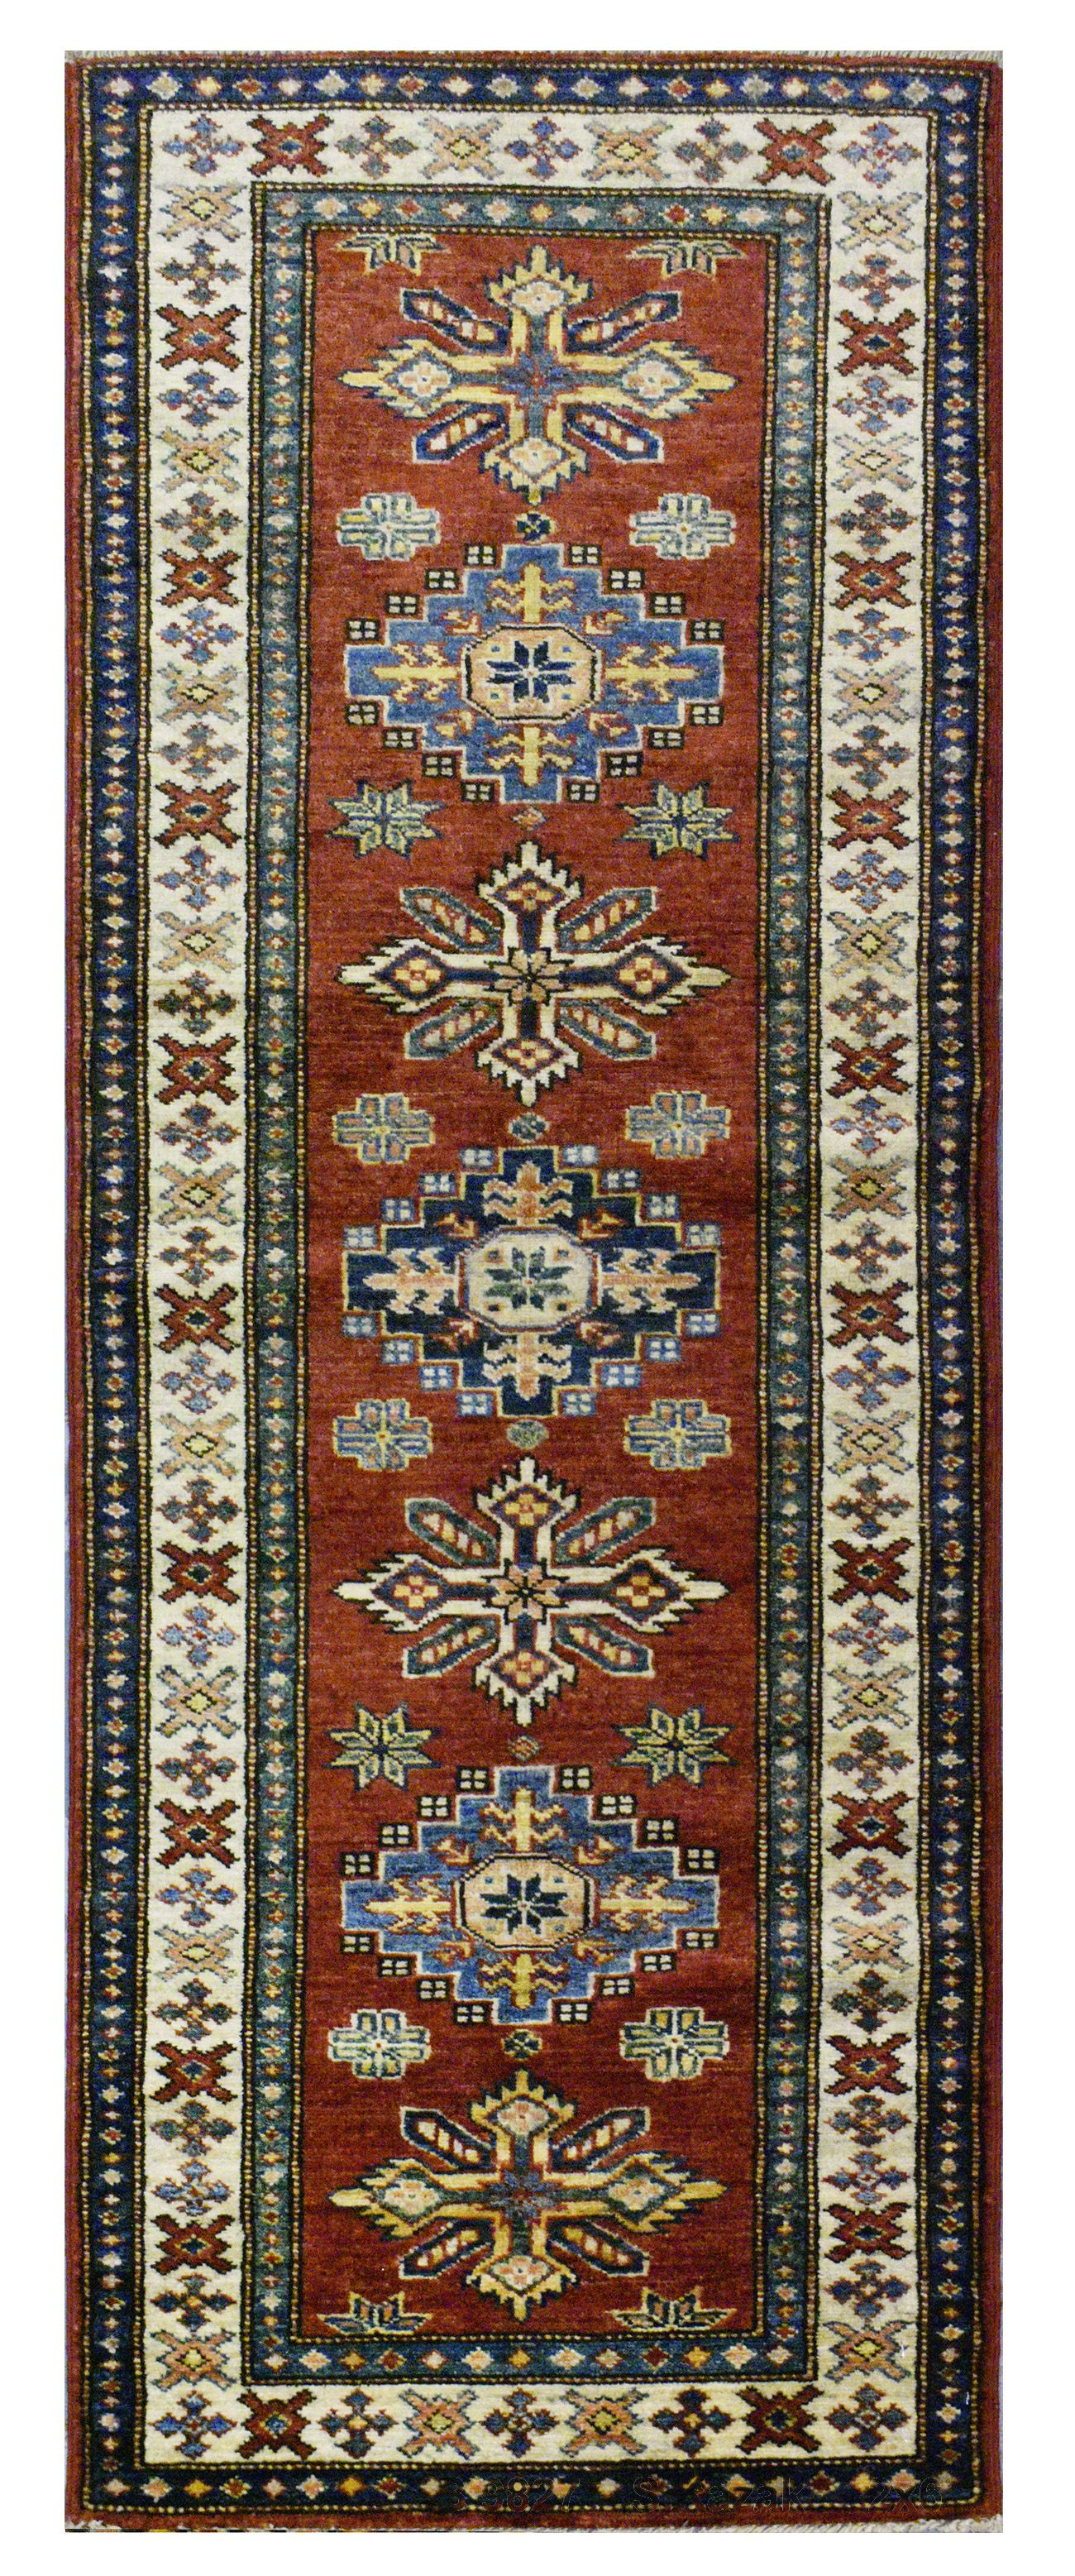 Parviz Oriential Rugs Is A Direct Importer And Er Of Fine Antique New Handmade Specializing In Total Rug Care Repar Cleaning